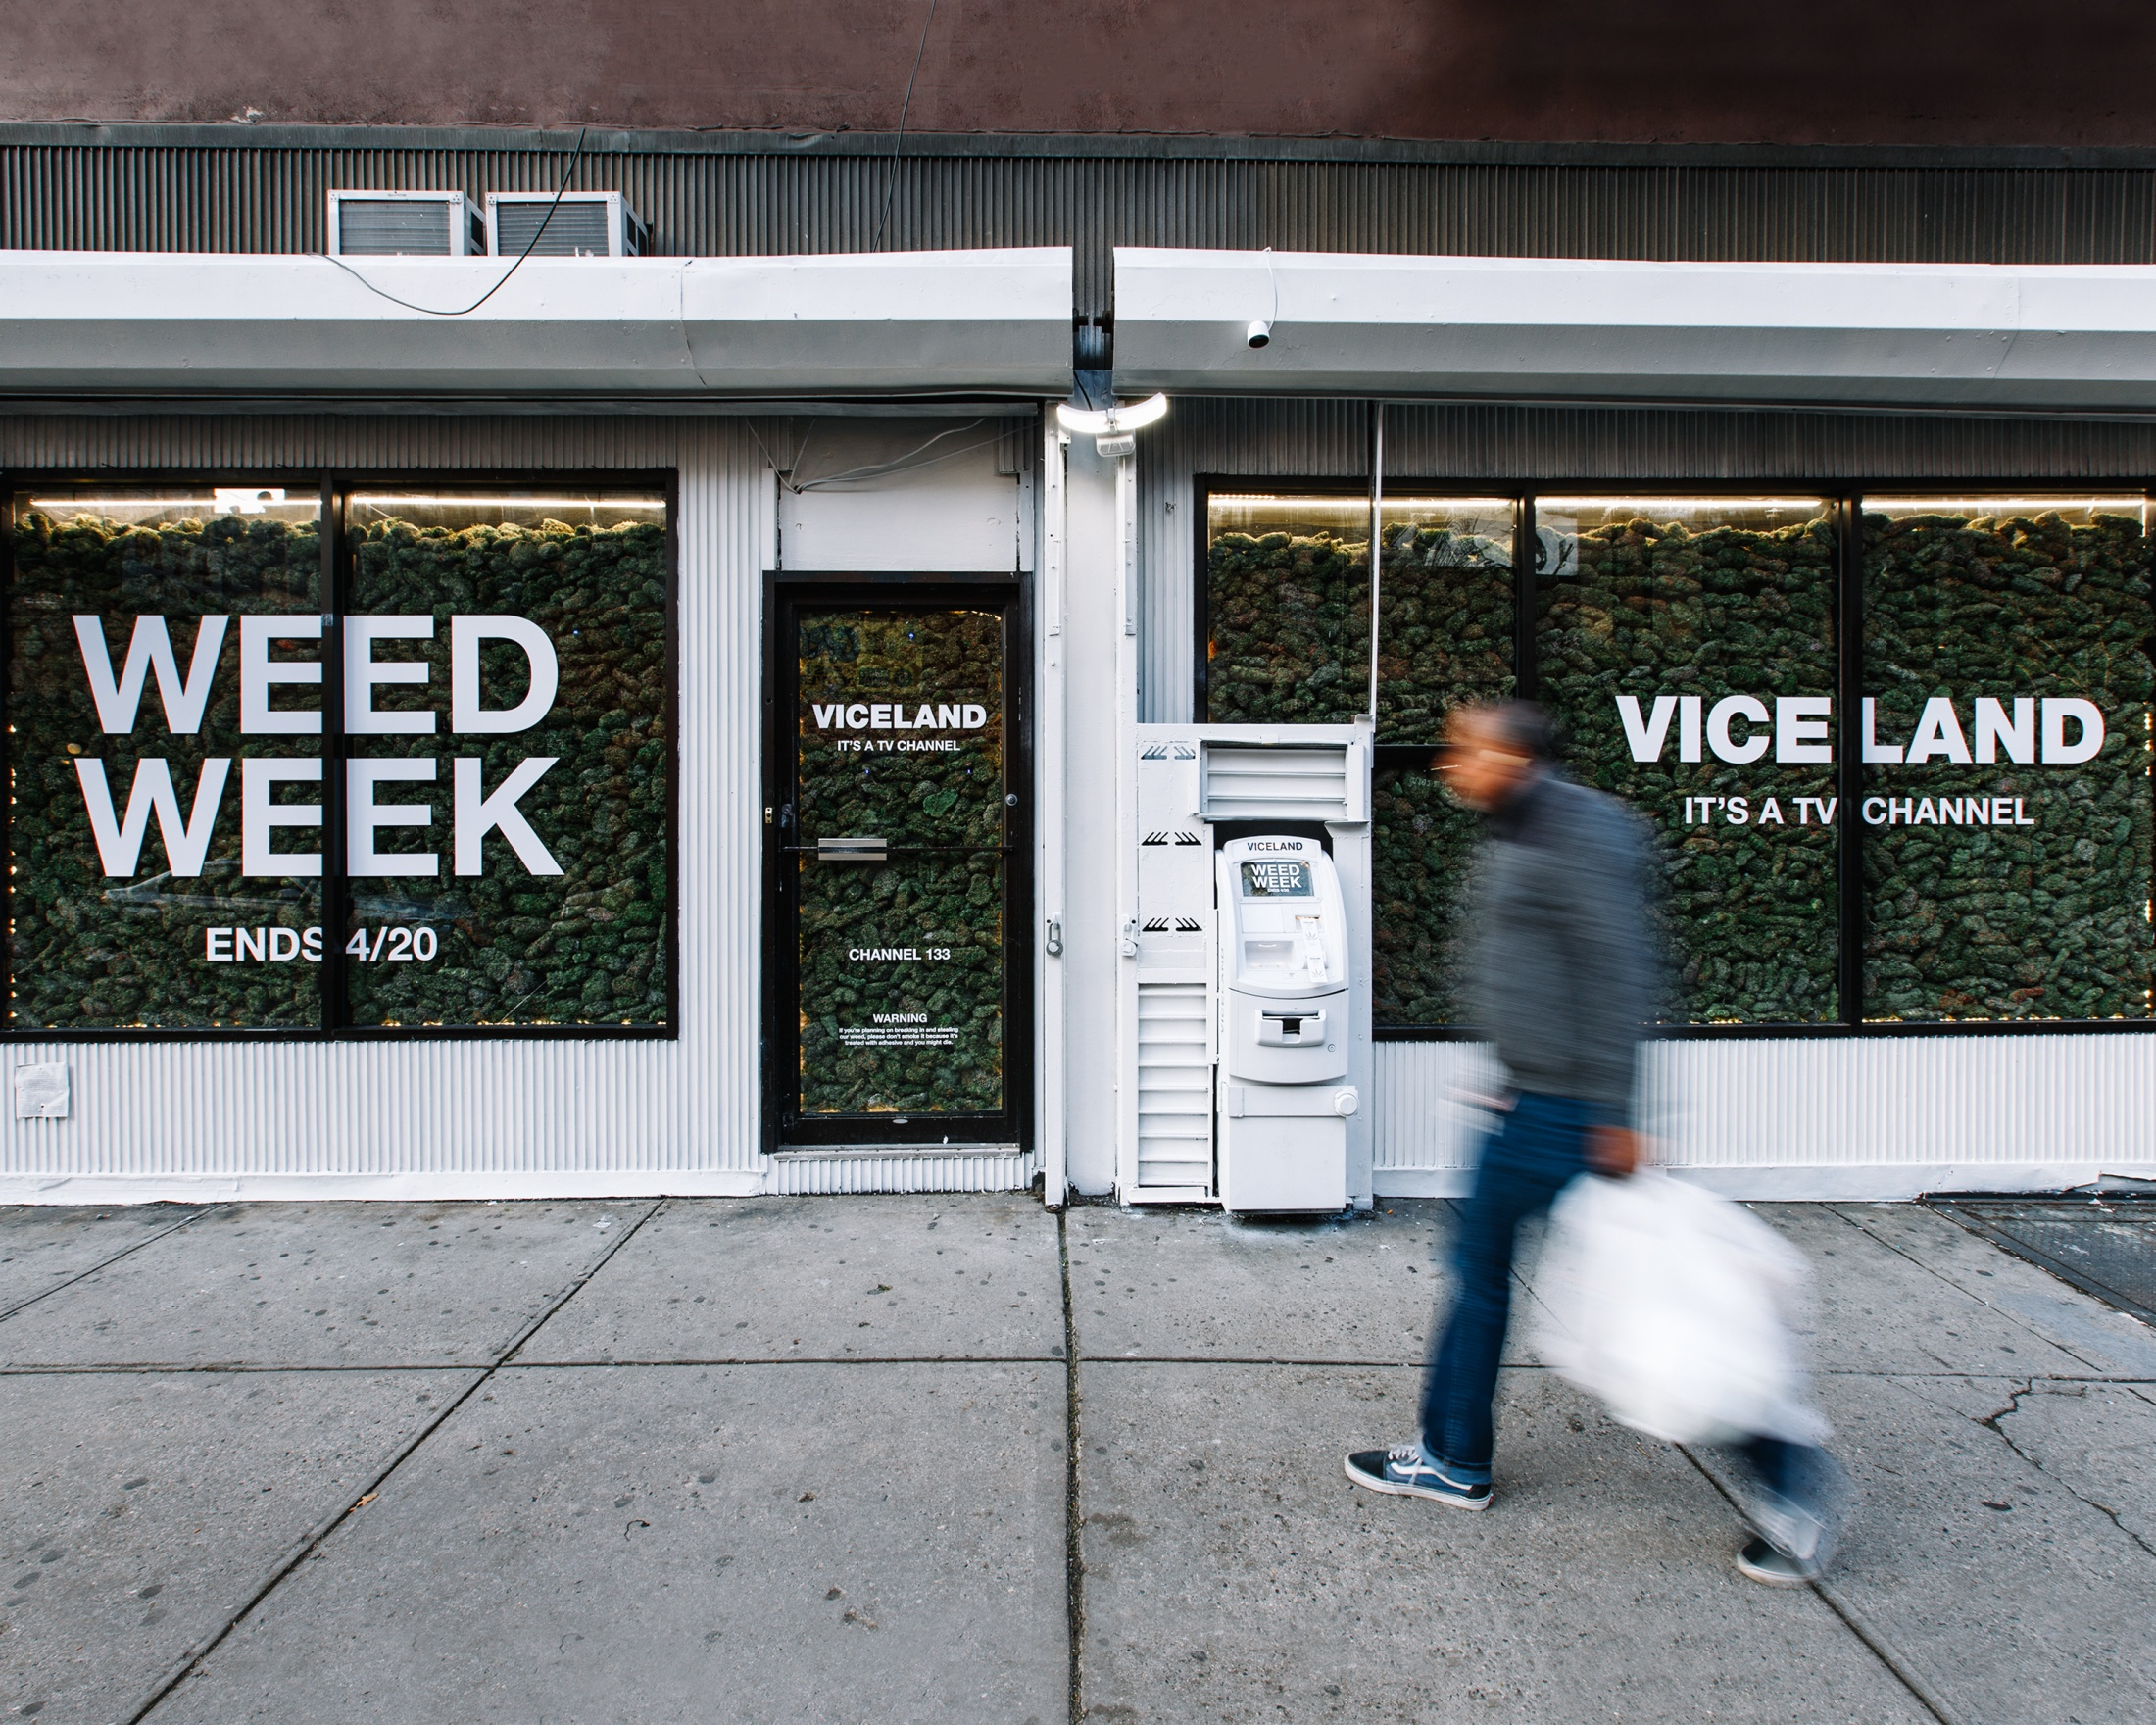 Thumbnail for Weed Week Weed Filled Stores